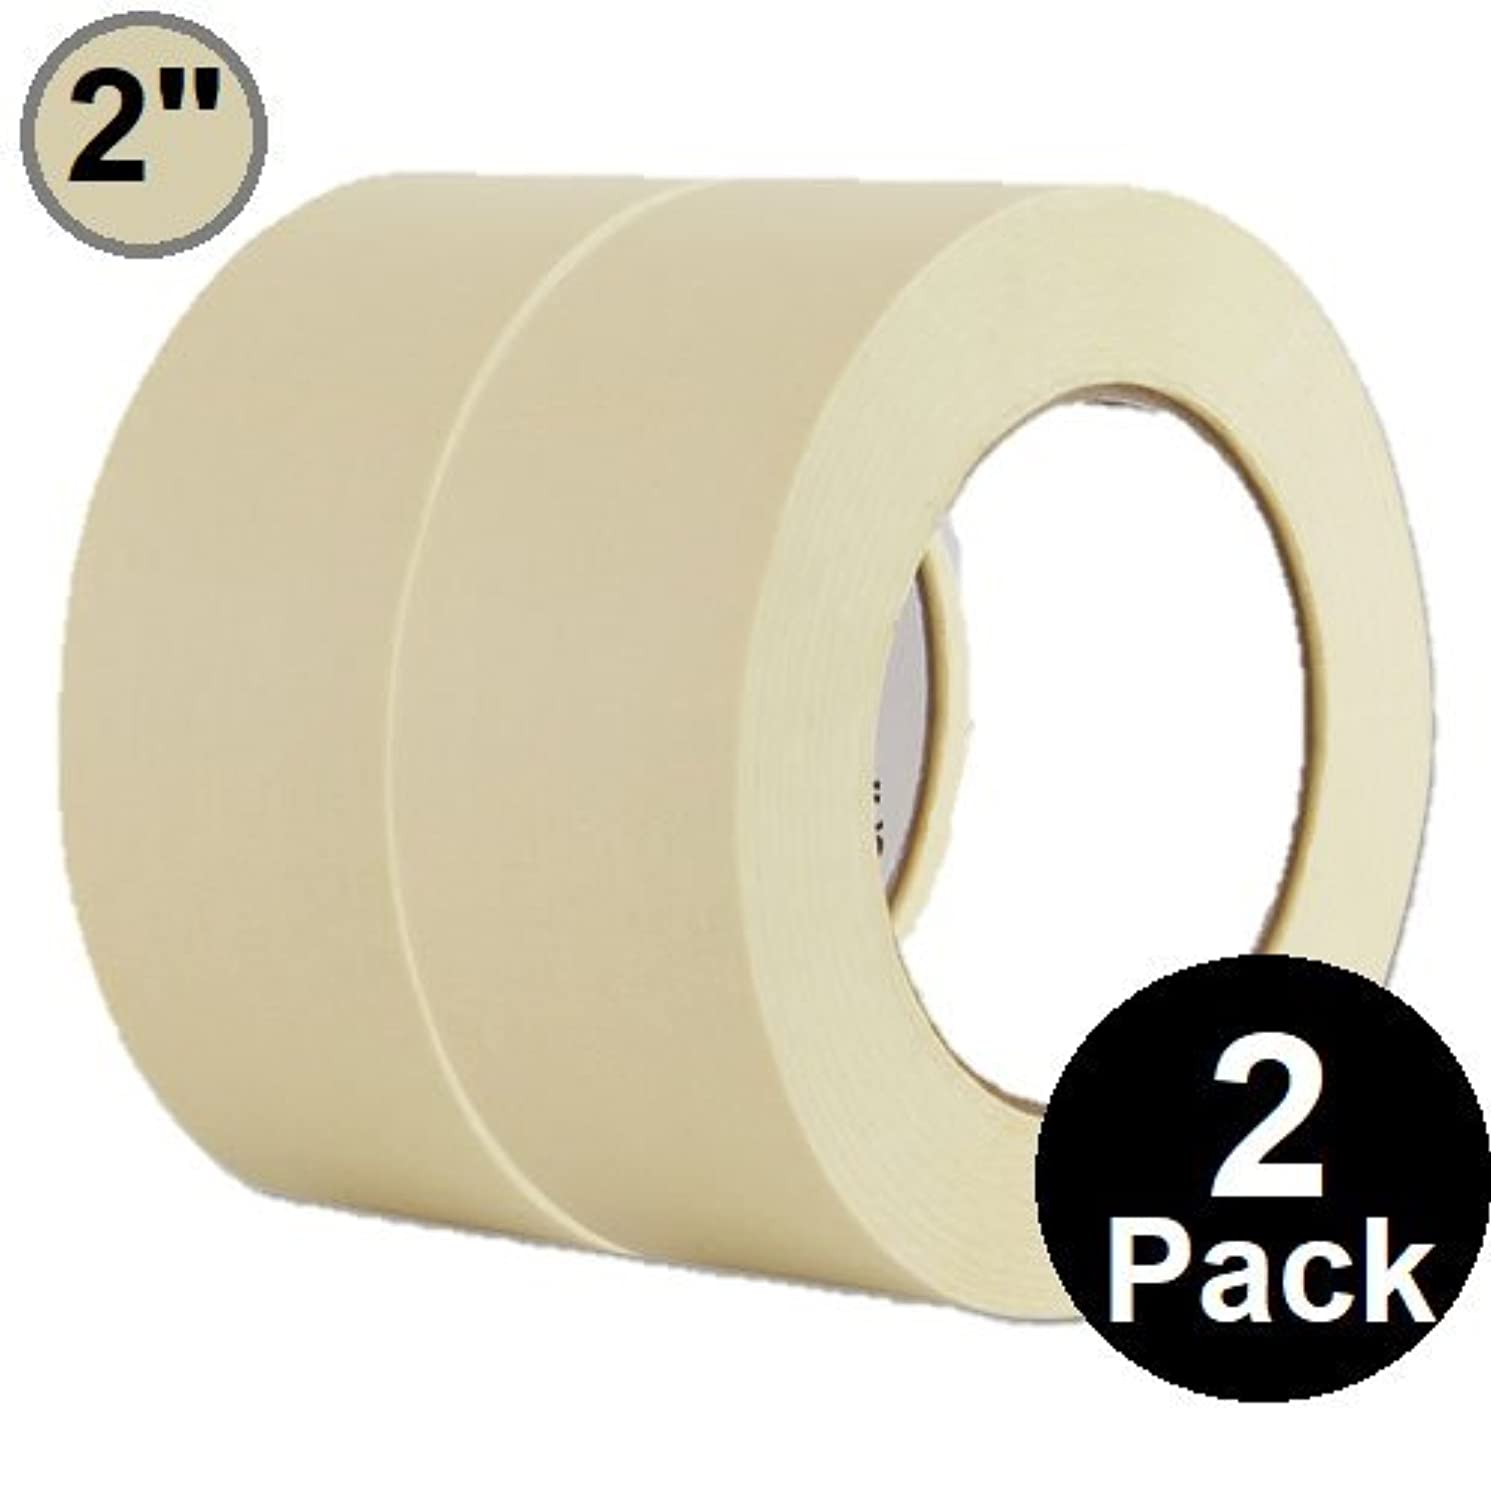 1InTheOffice General Purpose Masking Tape 2 inch x 60.1-Yards, 3